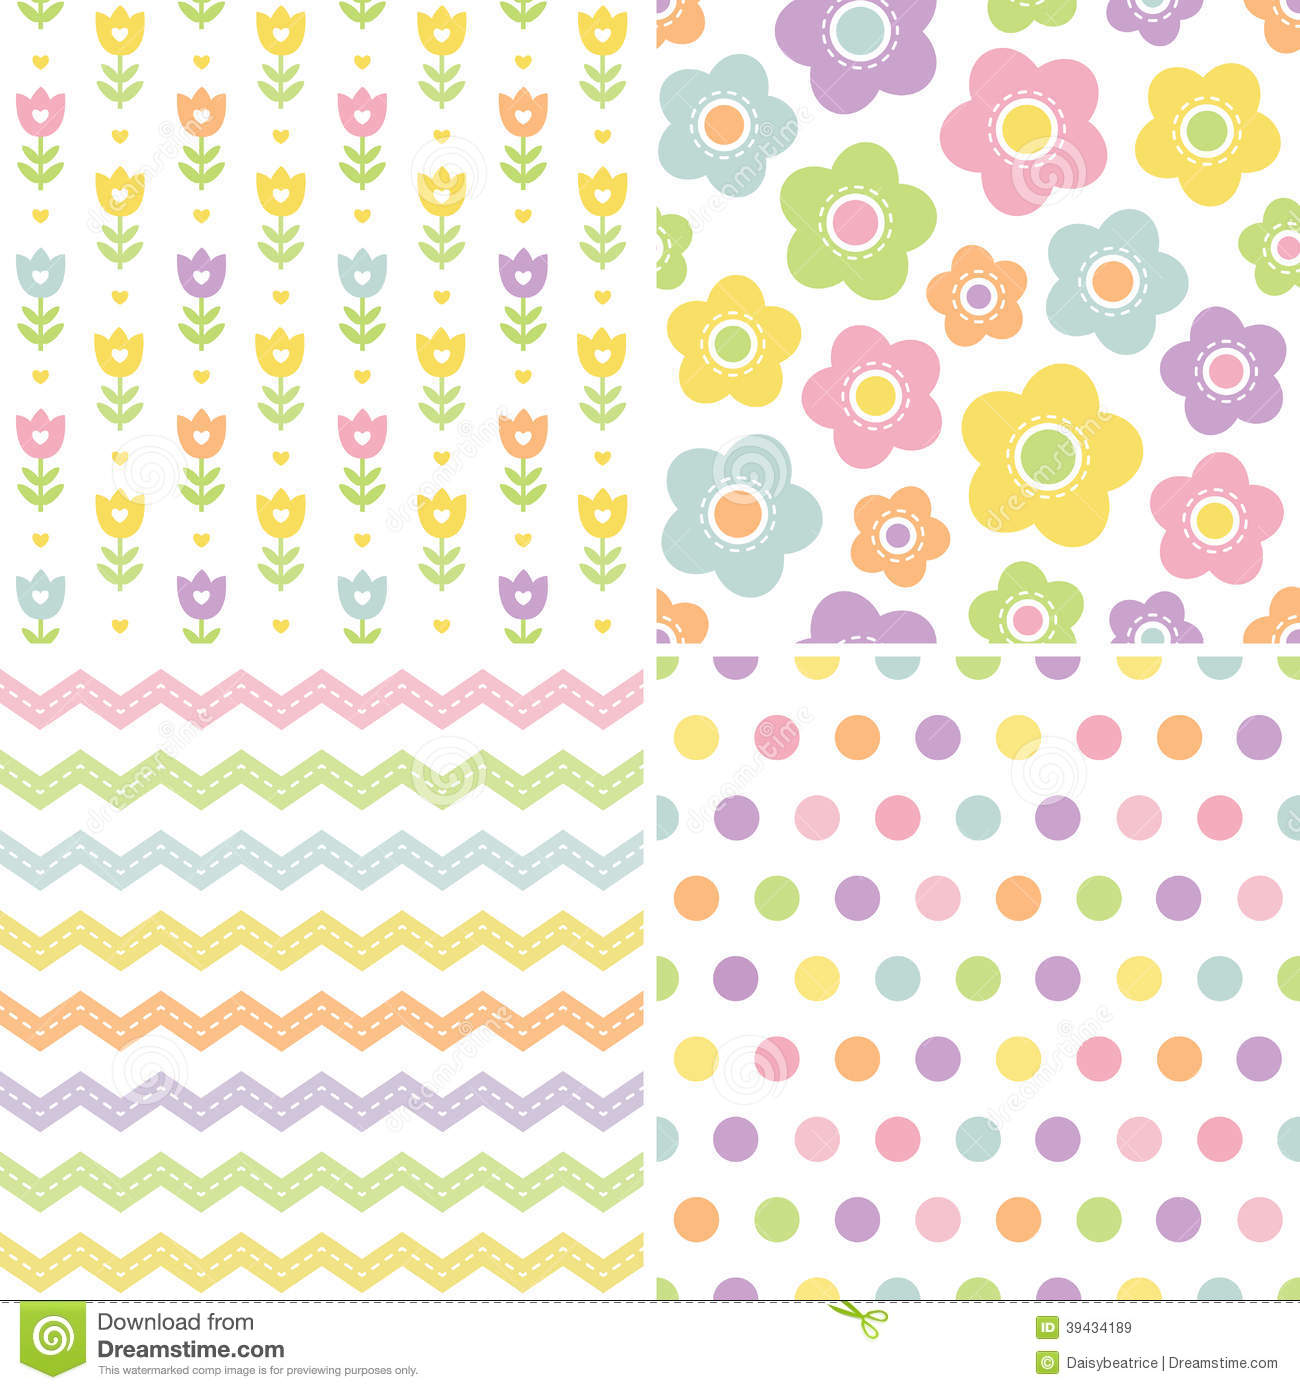 Cute seamless pink and yellow background patterns stock vector royalty free stock photo negle